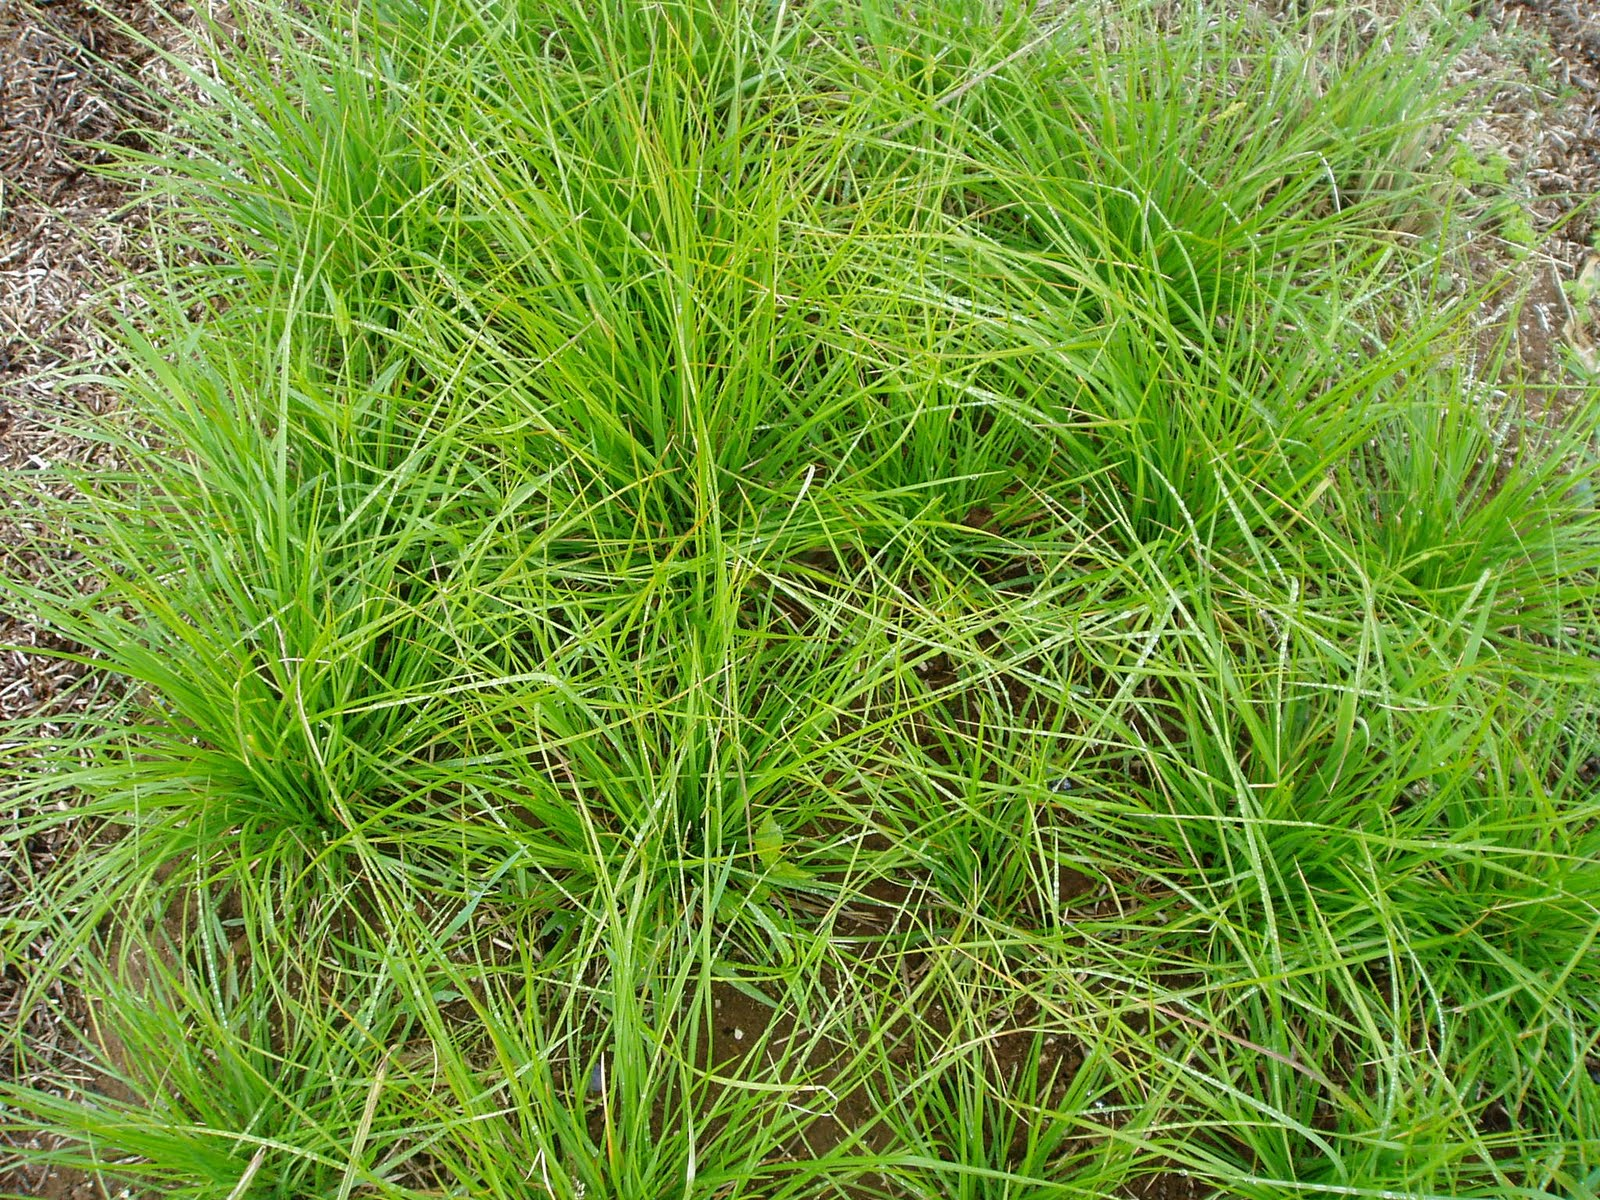 Lovegrass farm seslaria autumnalis ornamental grass at for Low growing ornamental grasses